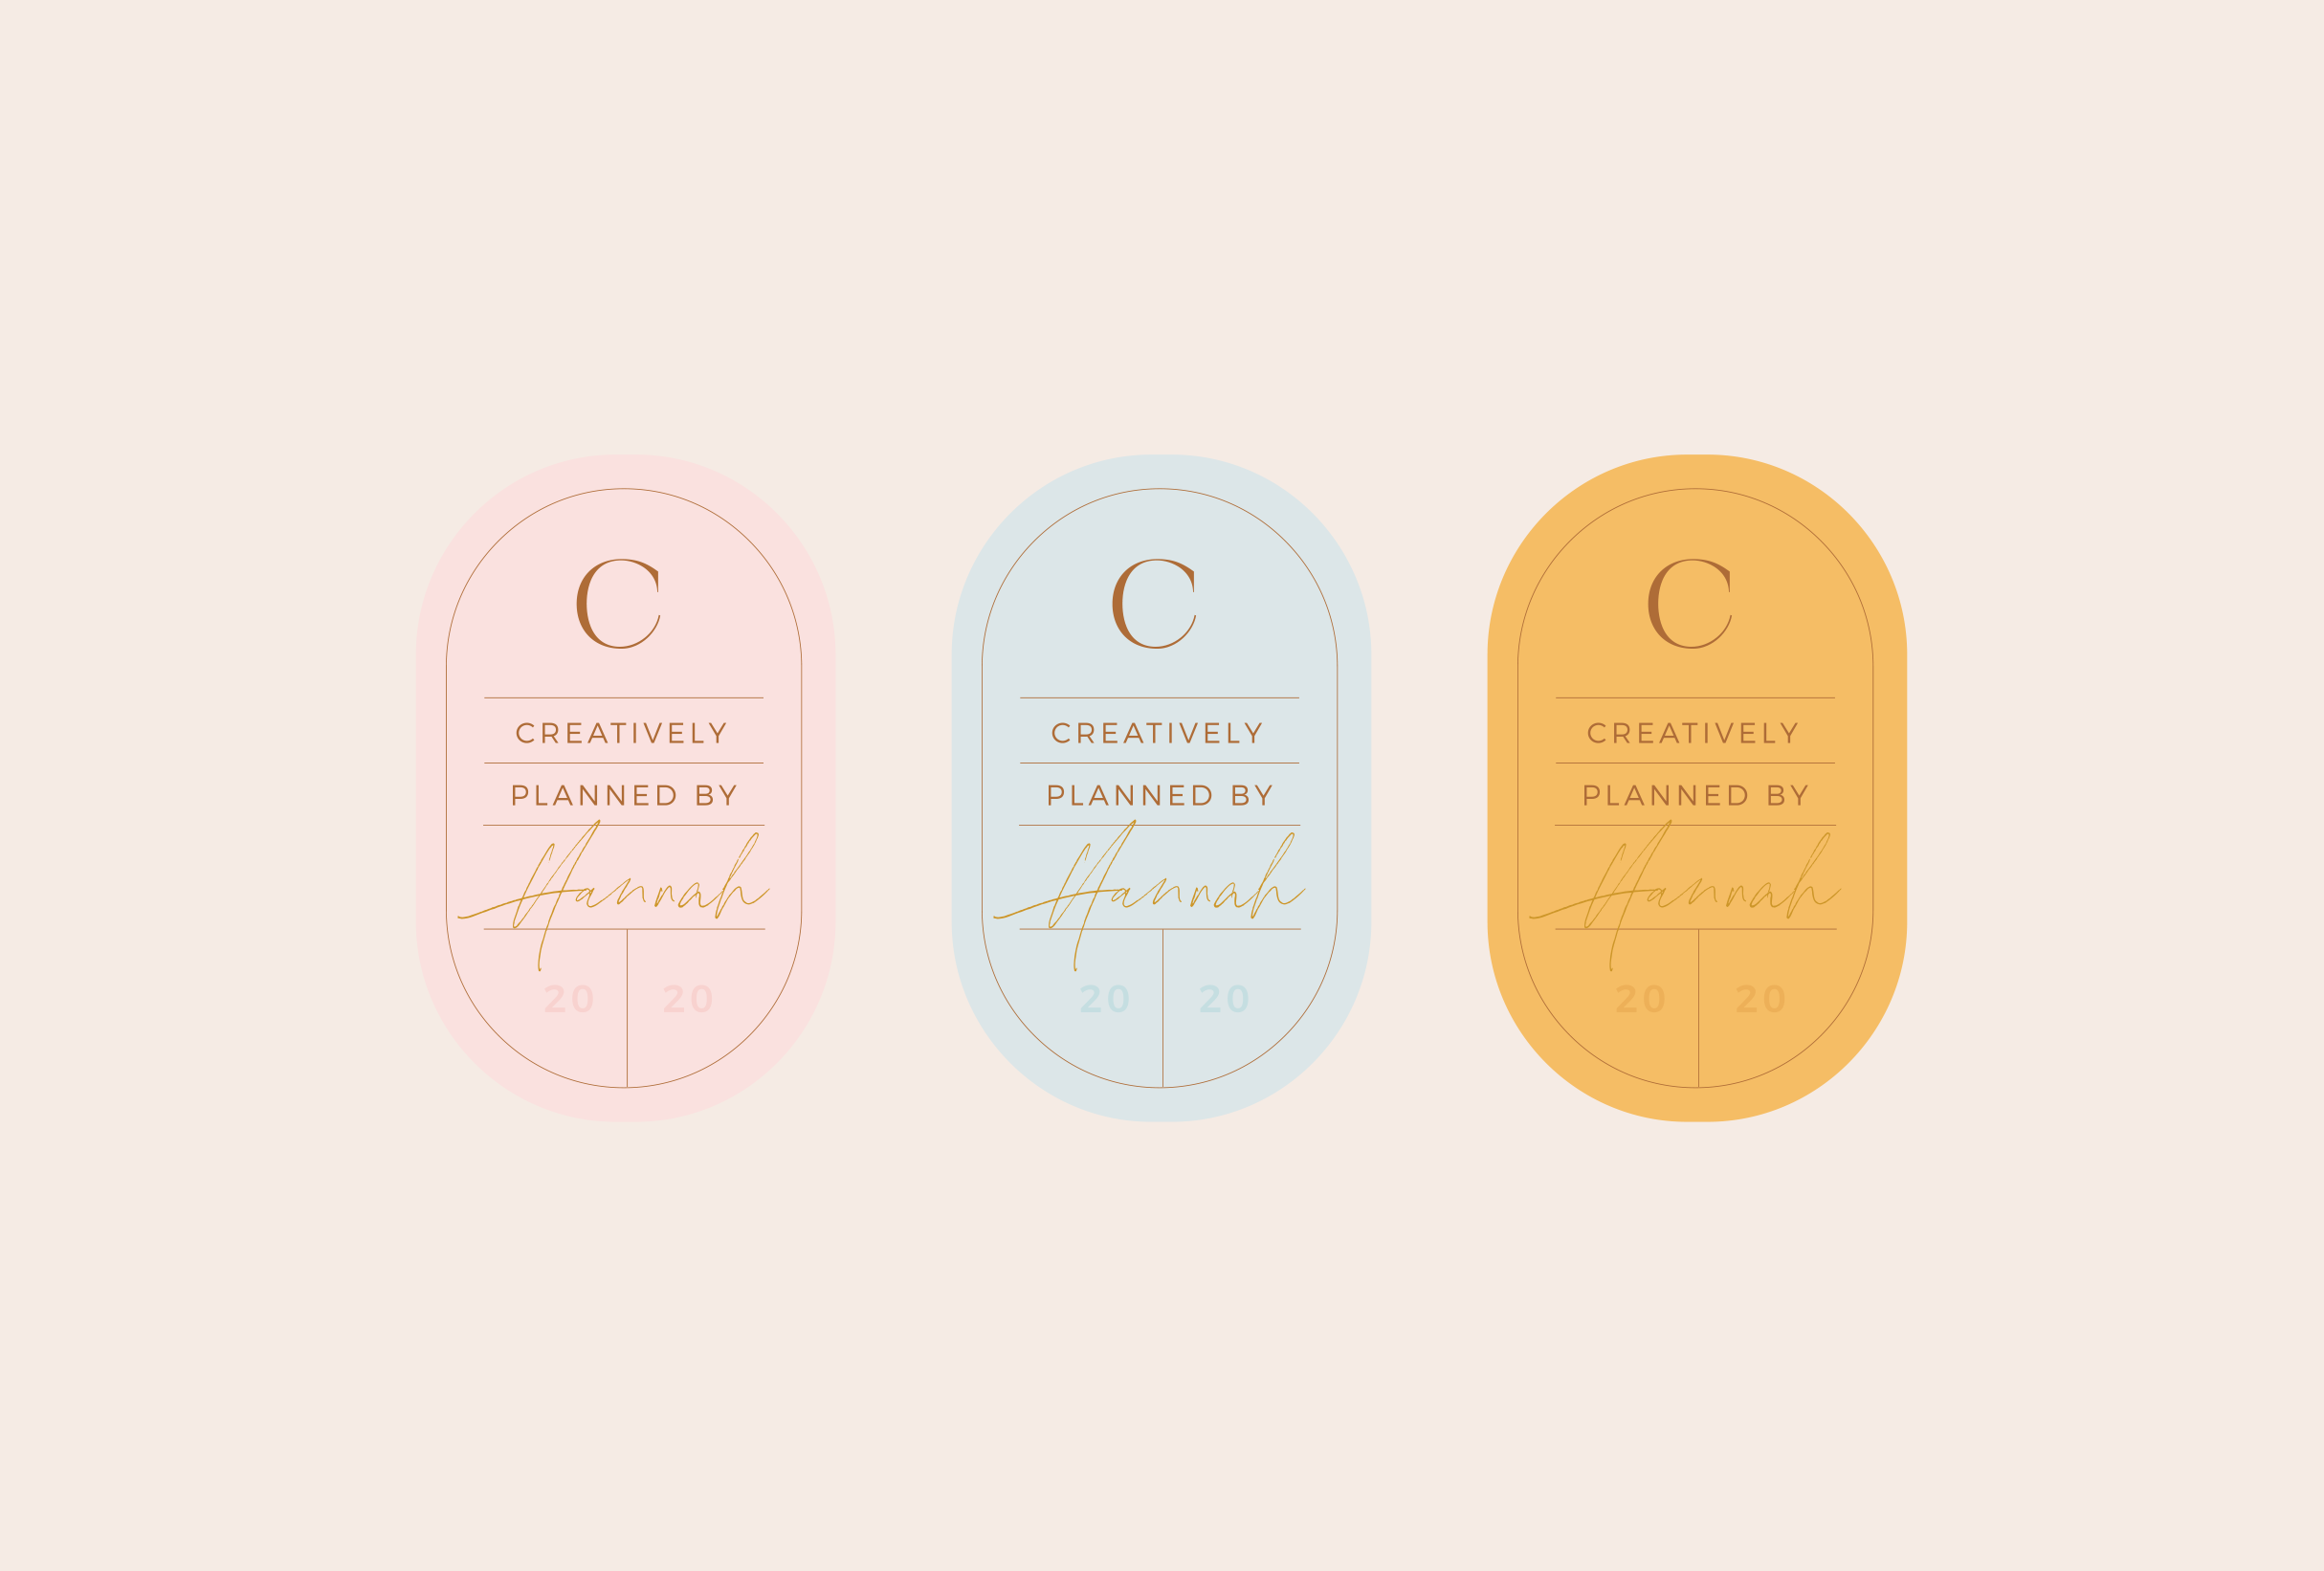 Sticker design pattern for Creative Plan, providing paperless planning products with an analogue feel - designed by Wiltshire-based graphic designer, Kaye Huett